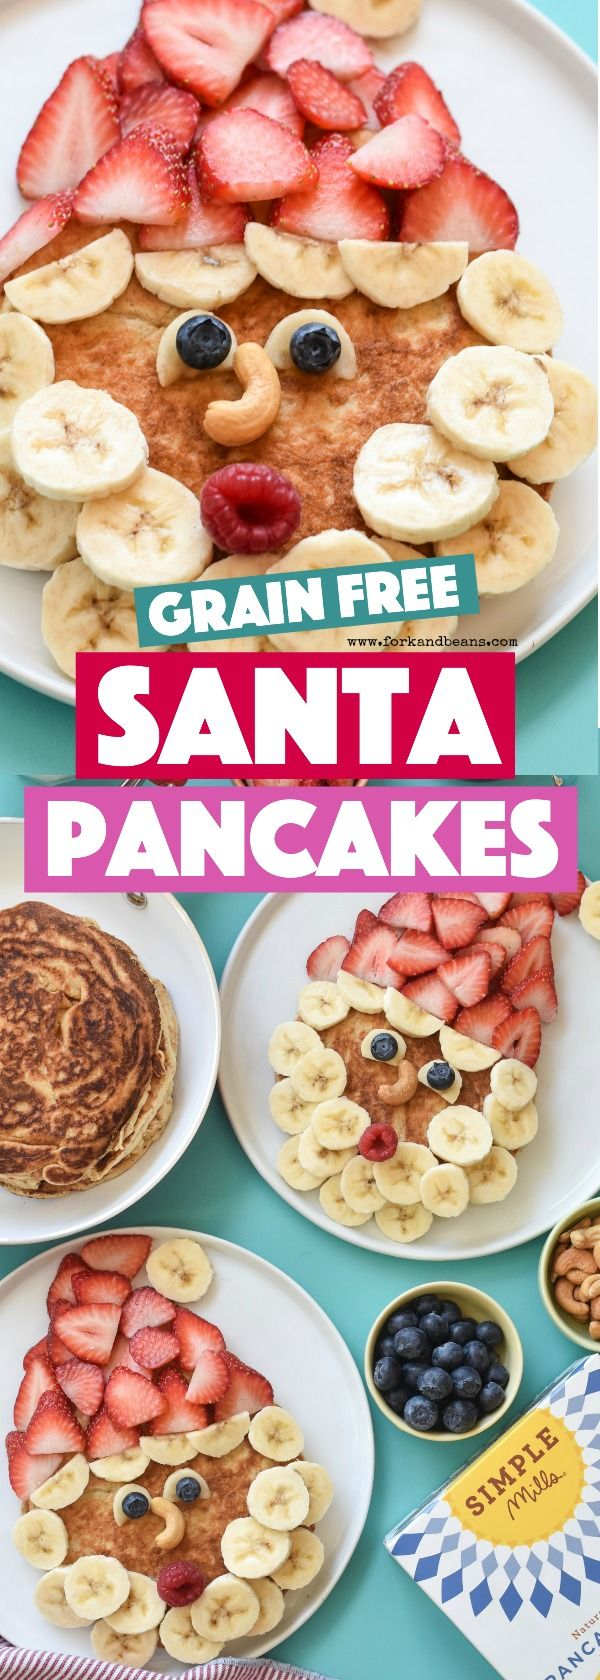 Breakfast is served using Simple Mills' pancake mix, these grain free Healthy Santa Pancakes are the best way to spread holiday cheer #christmasbreakfast #kidfood #funfoodforkids